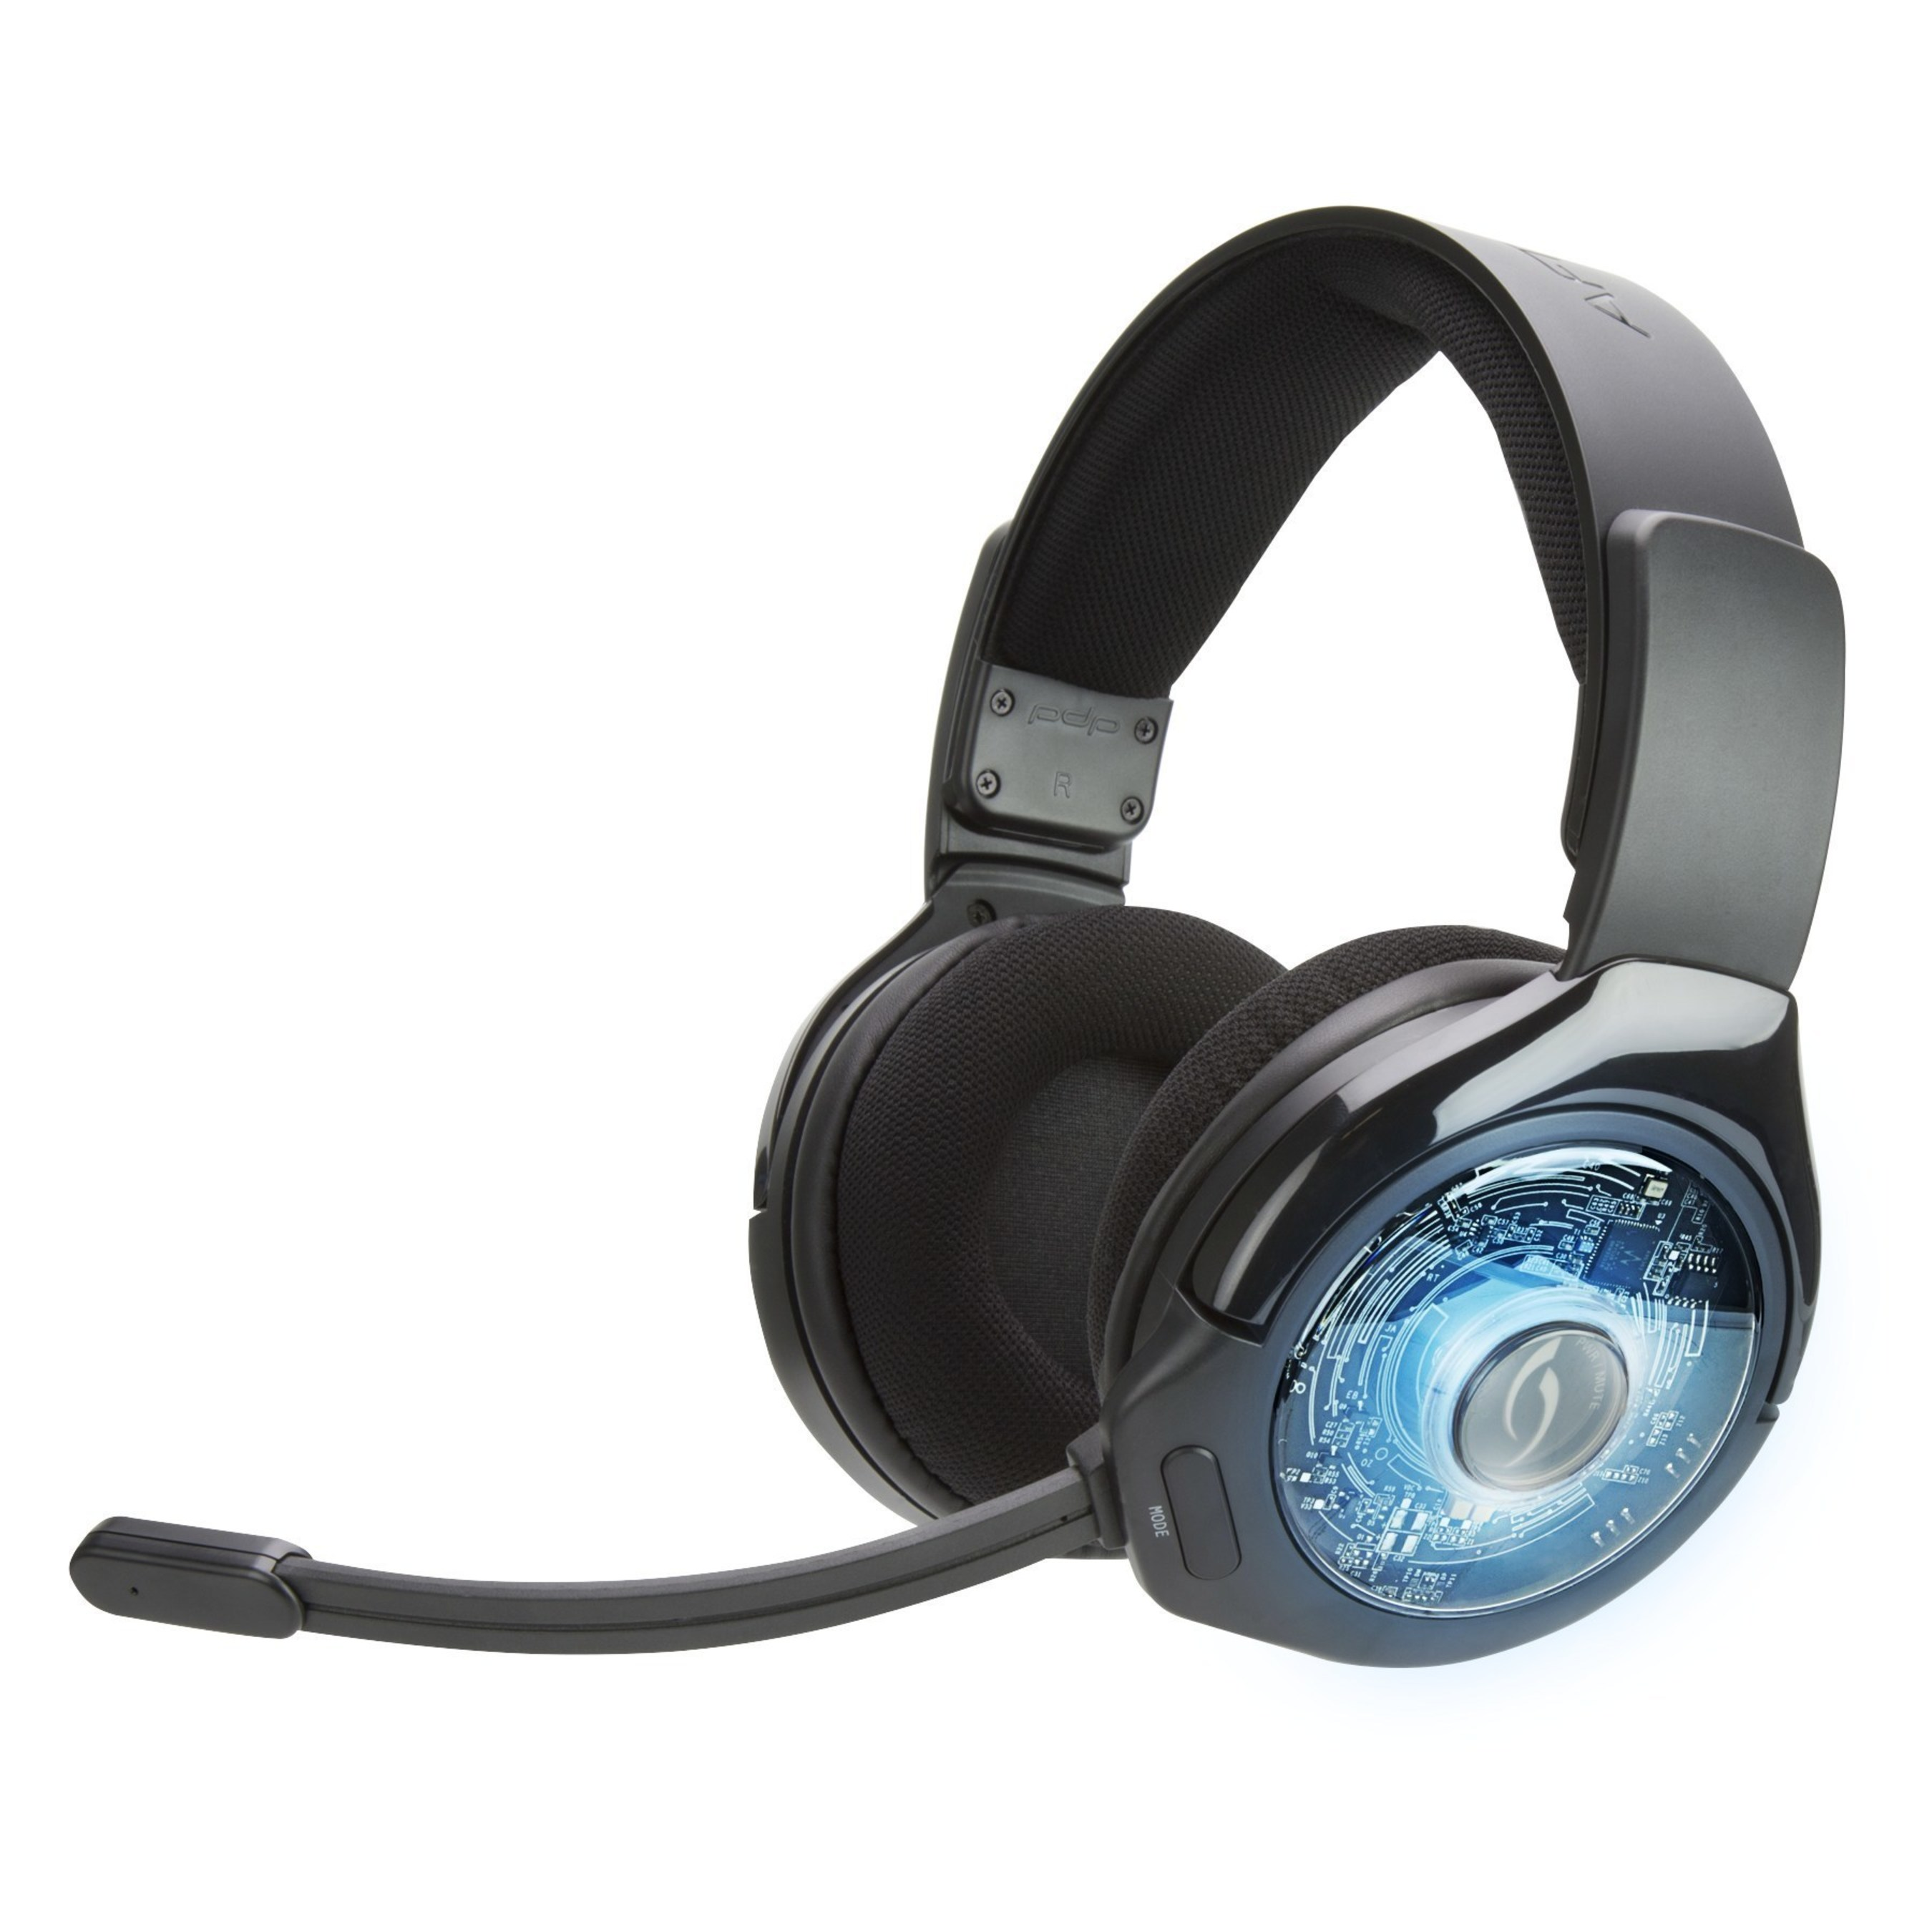 Performance Designed Products Releases New Afterglow AG 9+ Prismatic Wireless Headset